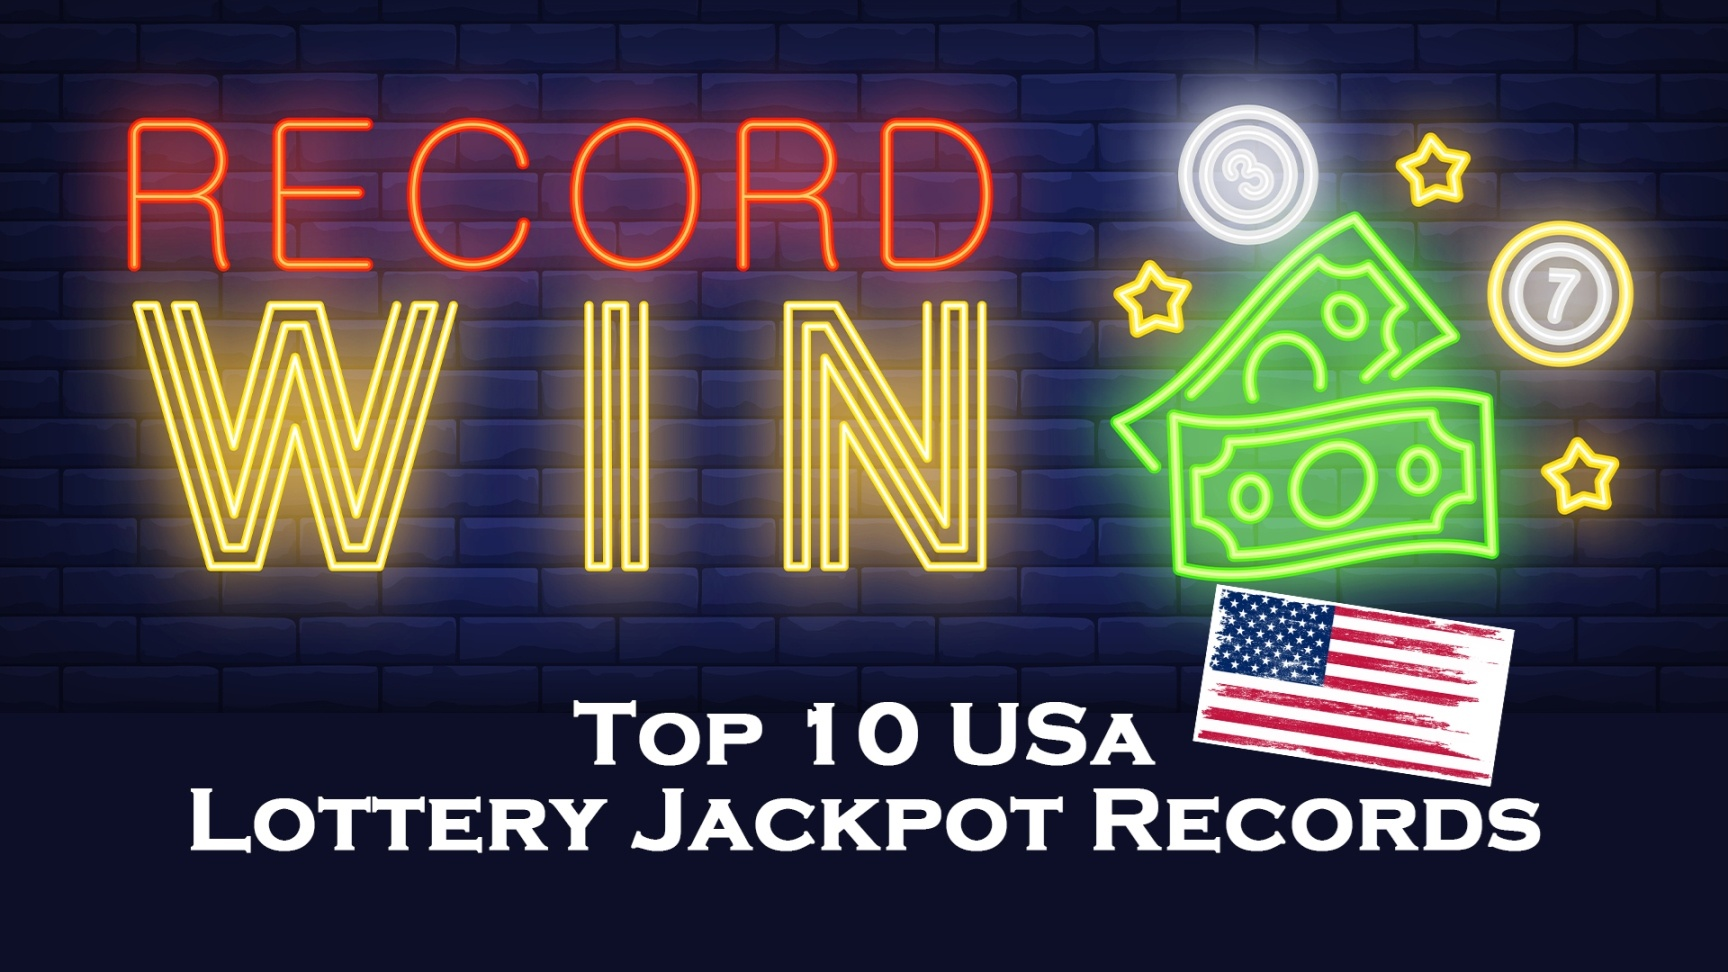 Top 10 USA lottery jackpot records